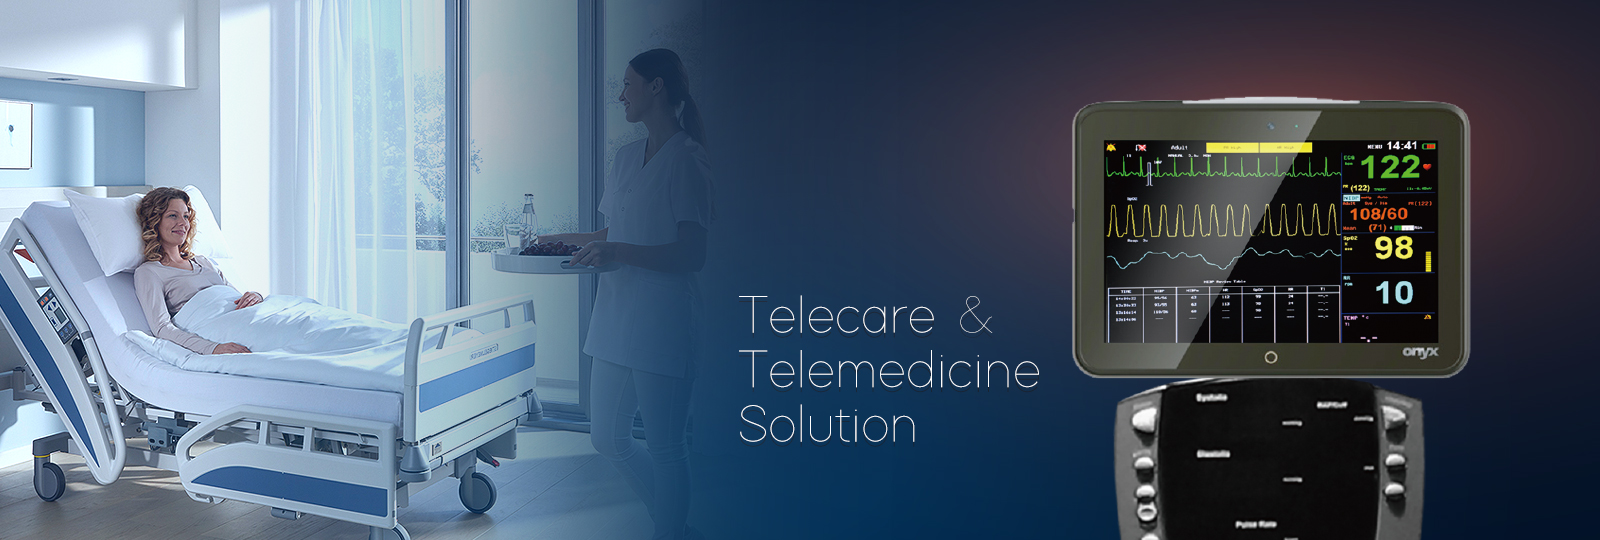 Telecare & Telemedicine Solution